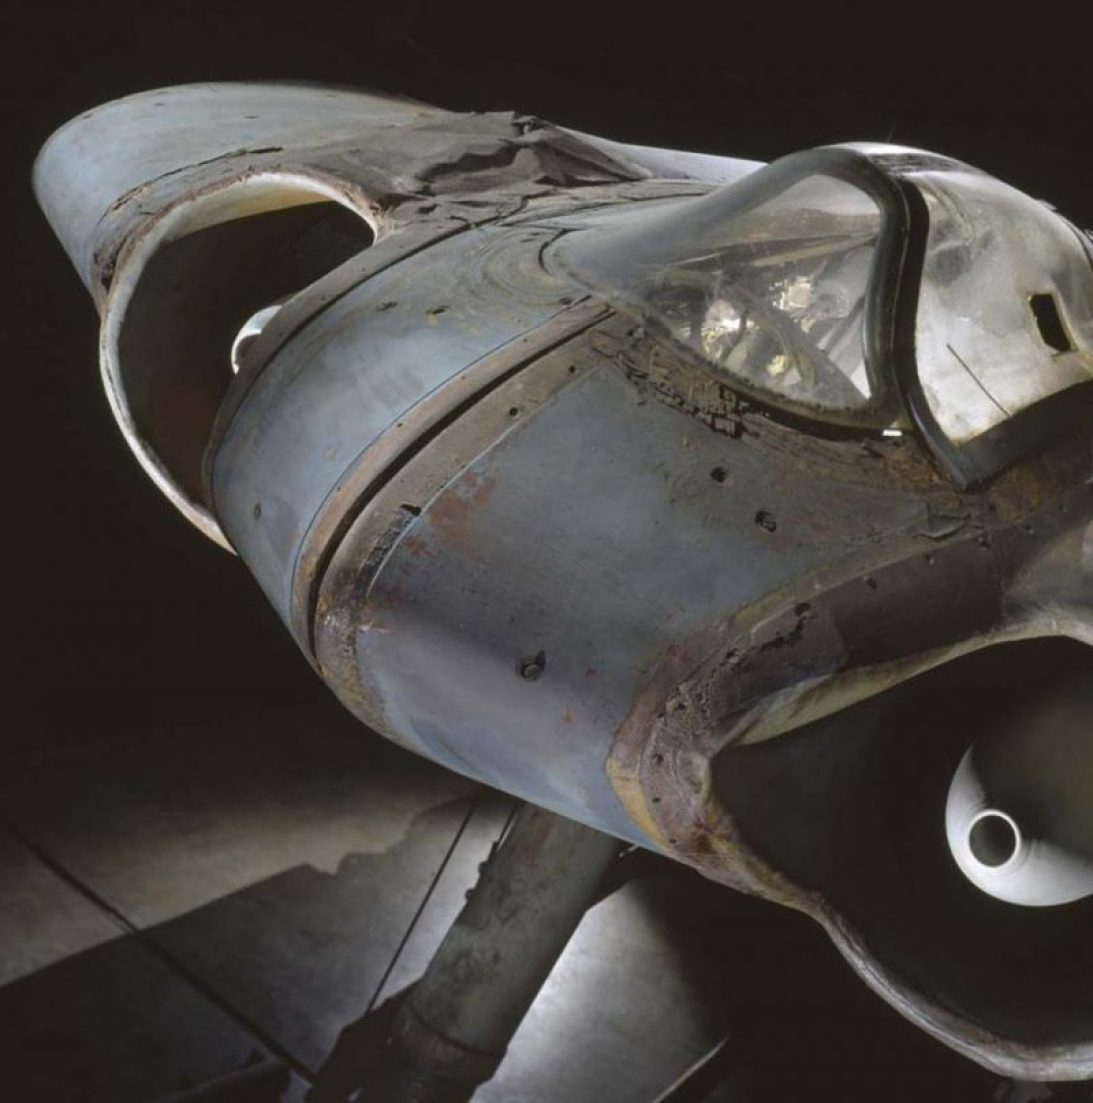 restoring-the-horten-229-v3-flying-wing-4